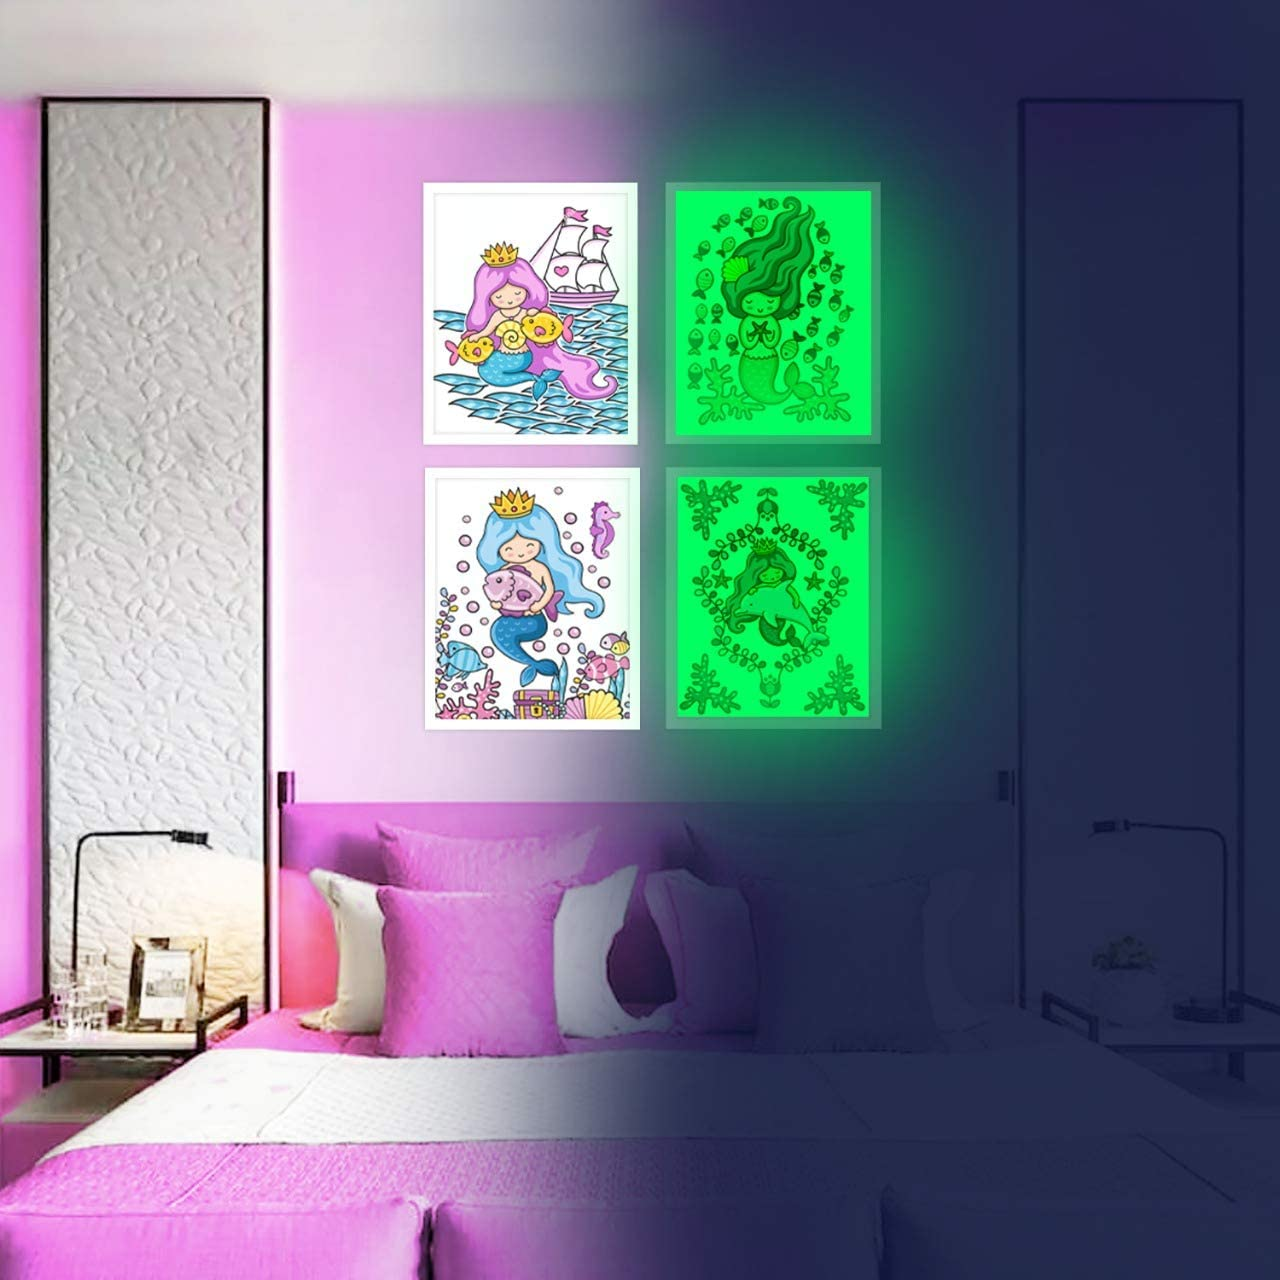 Mermaid Wall Decor, Glow in The Dark 4 Posters for Girls Bedroom,Glowing Pictures, Birthday Gift for for Toddlers Room ,Party Decorations & Supplies